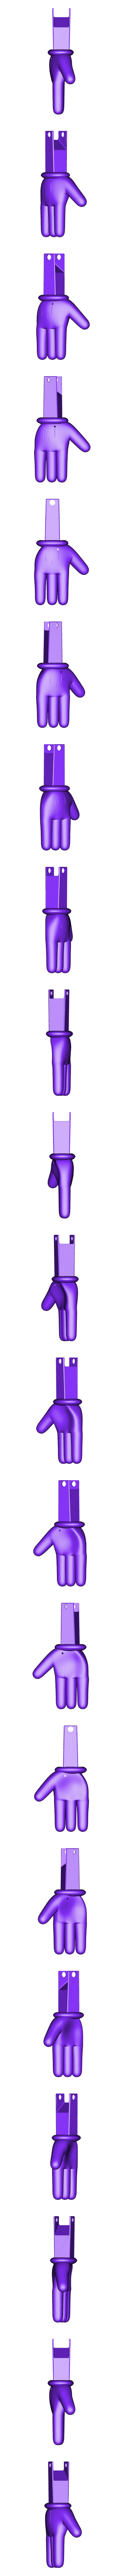 Underarm and Hand right.stl Download free STL file Pinocchio • Model to 3D print, Gunnarf1986